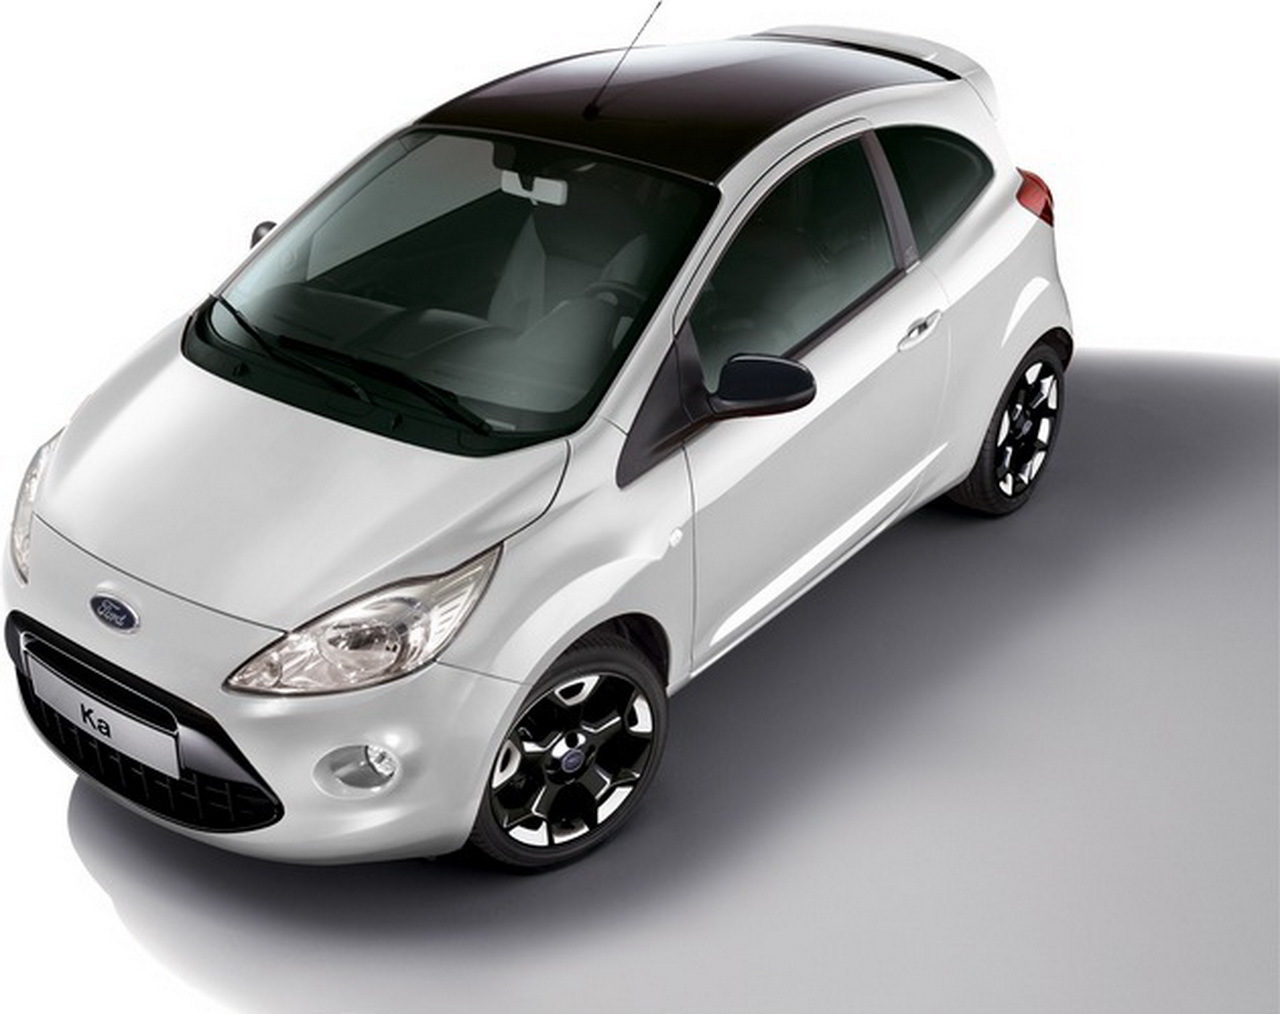 ford ka black white edition 2015 nouvelle s rie. Black Bedroom Furniture Sets. Home Design Ideas